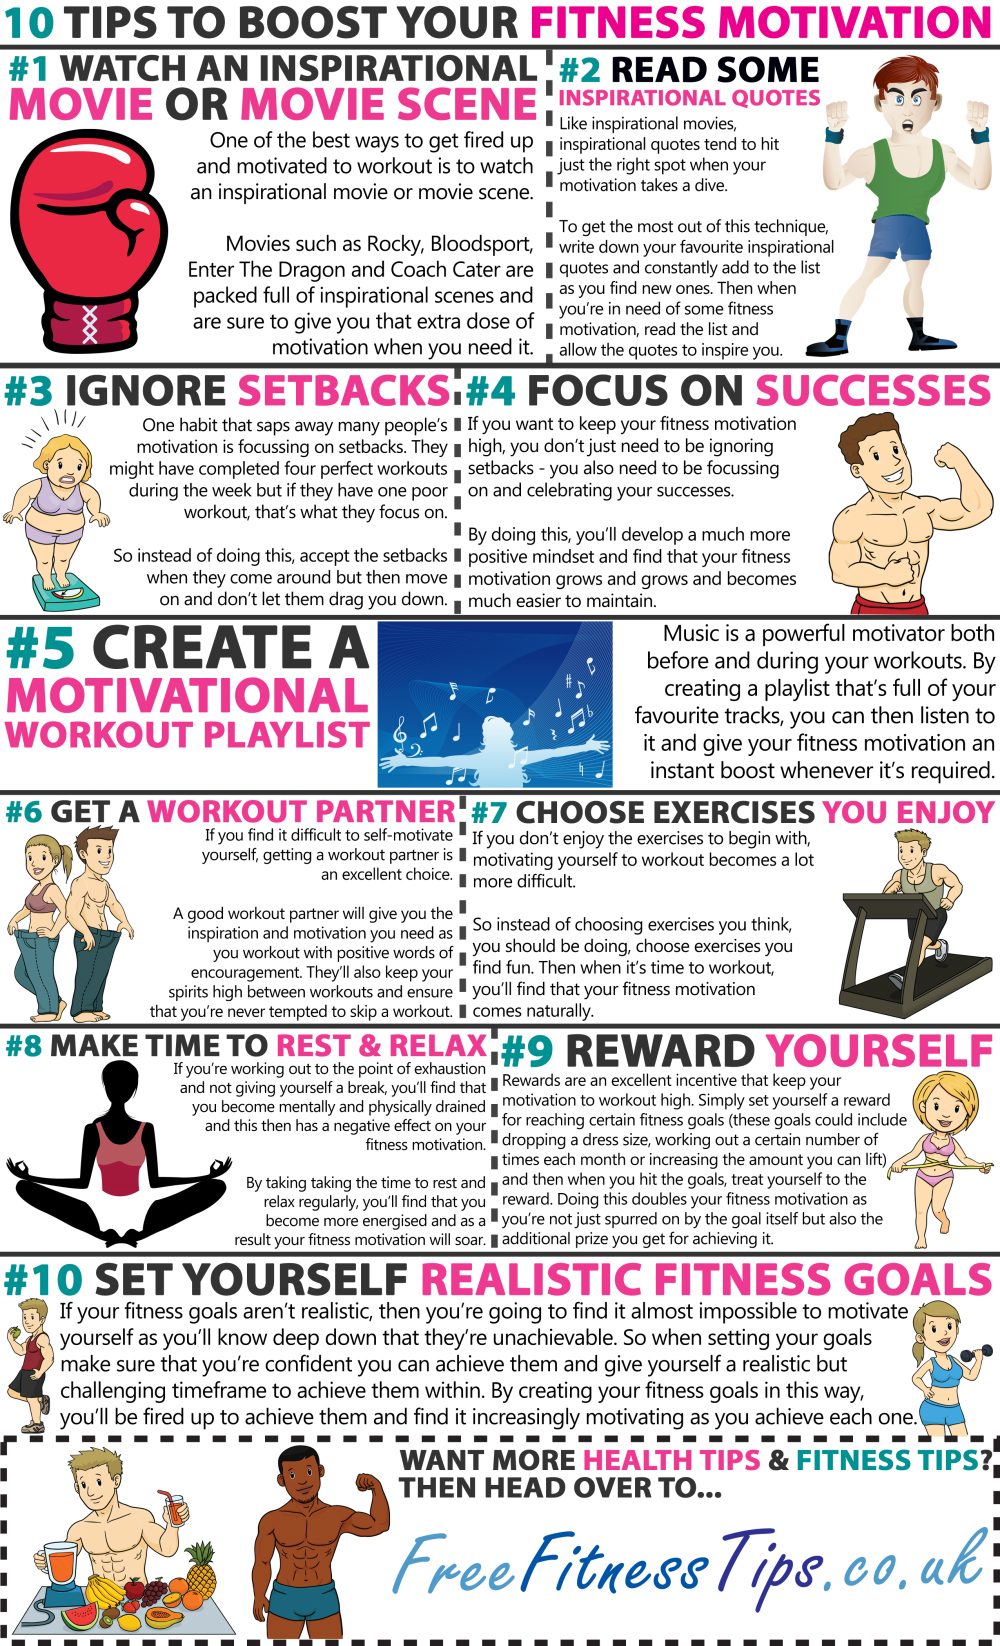 10 Motivation Tips to Lift Your Fitness Program - Infographic